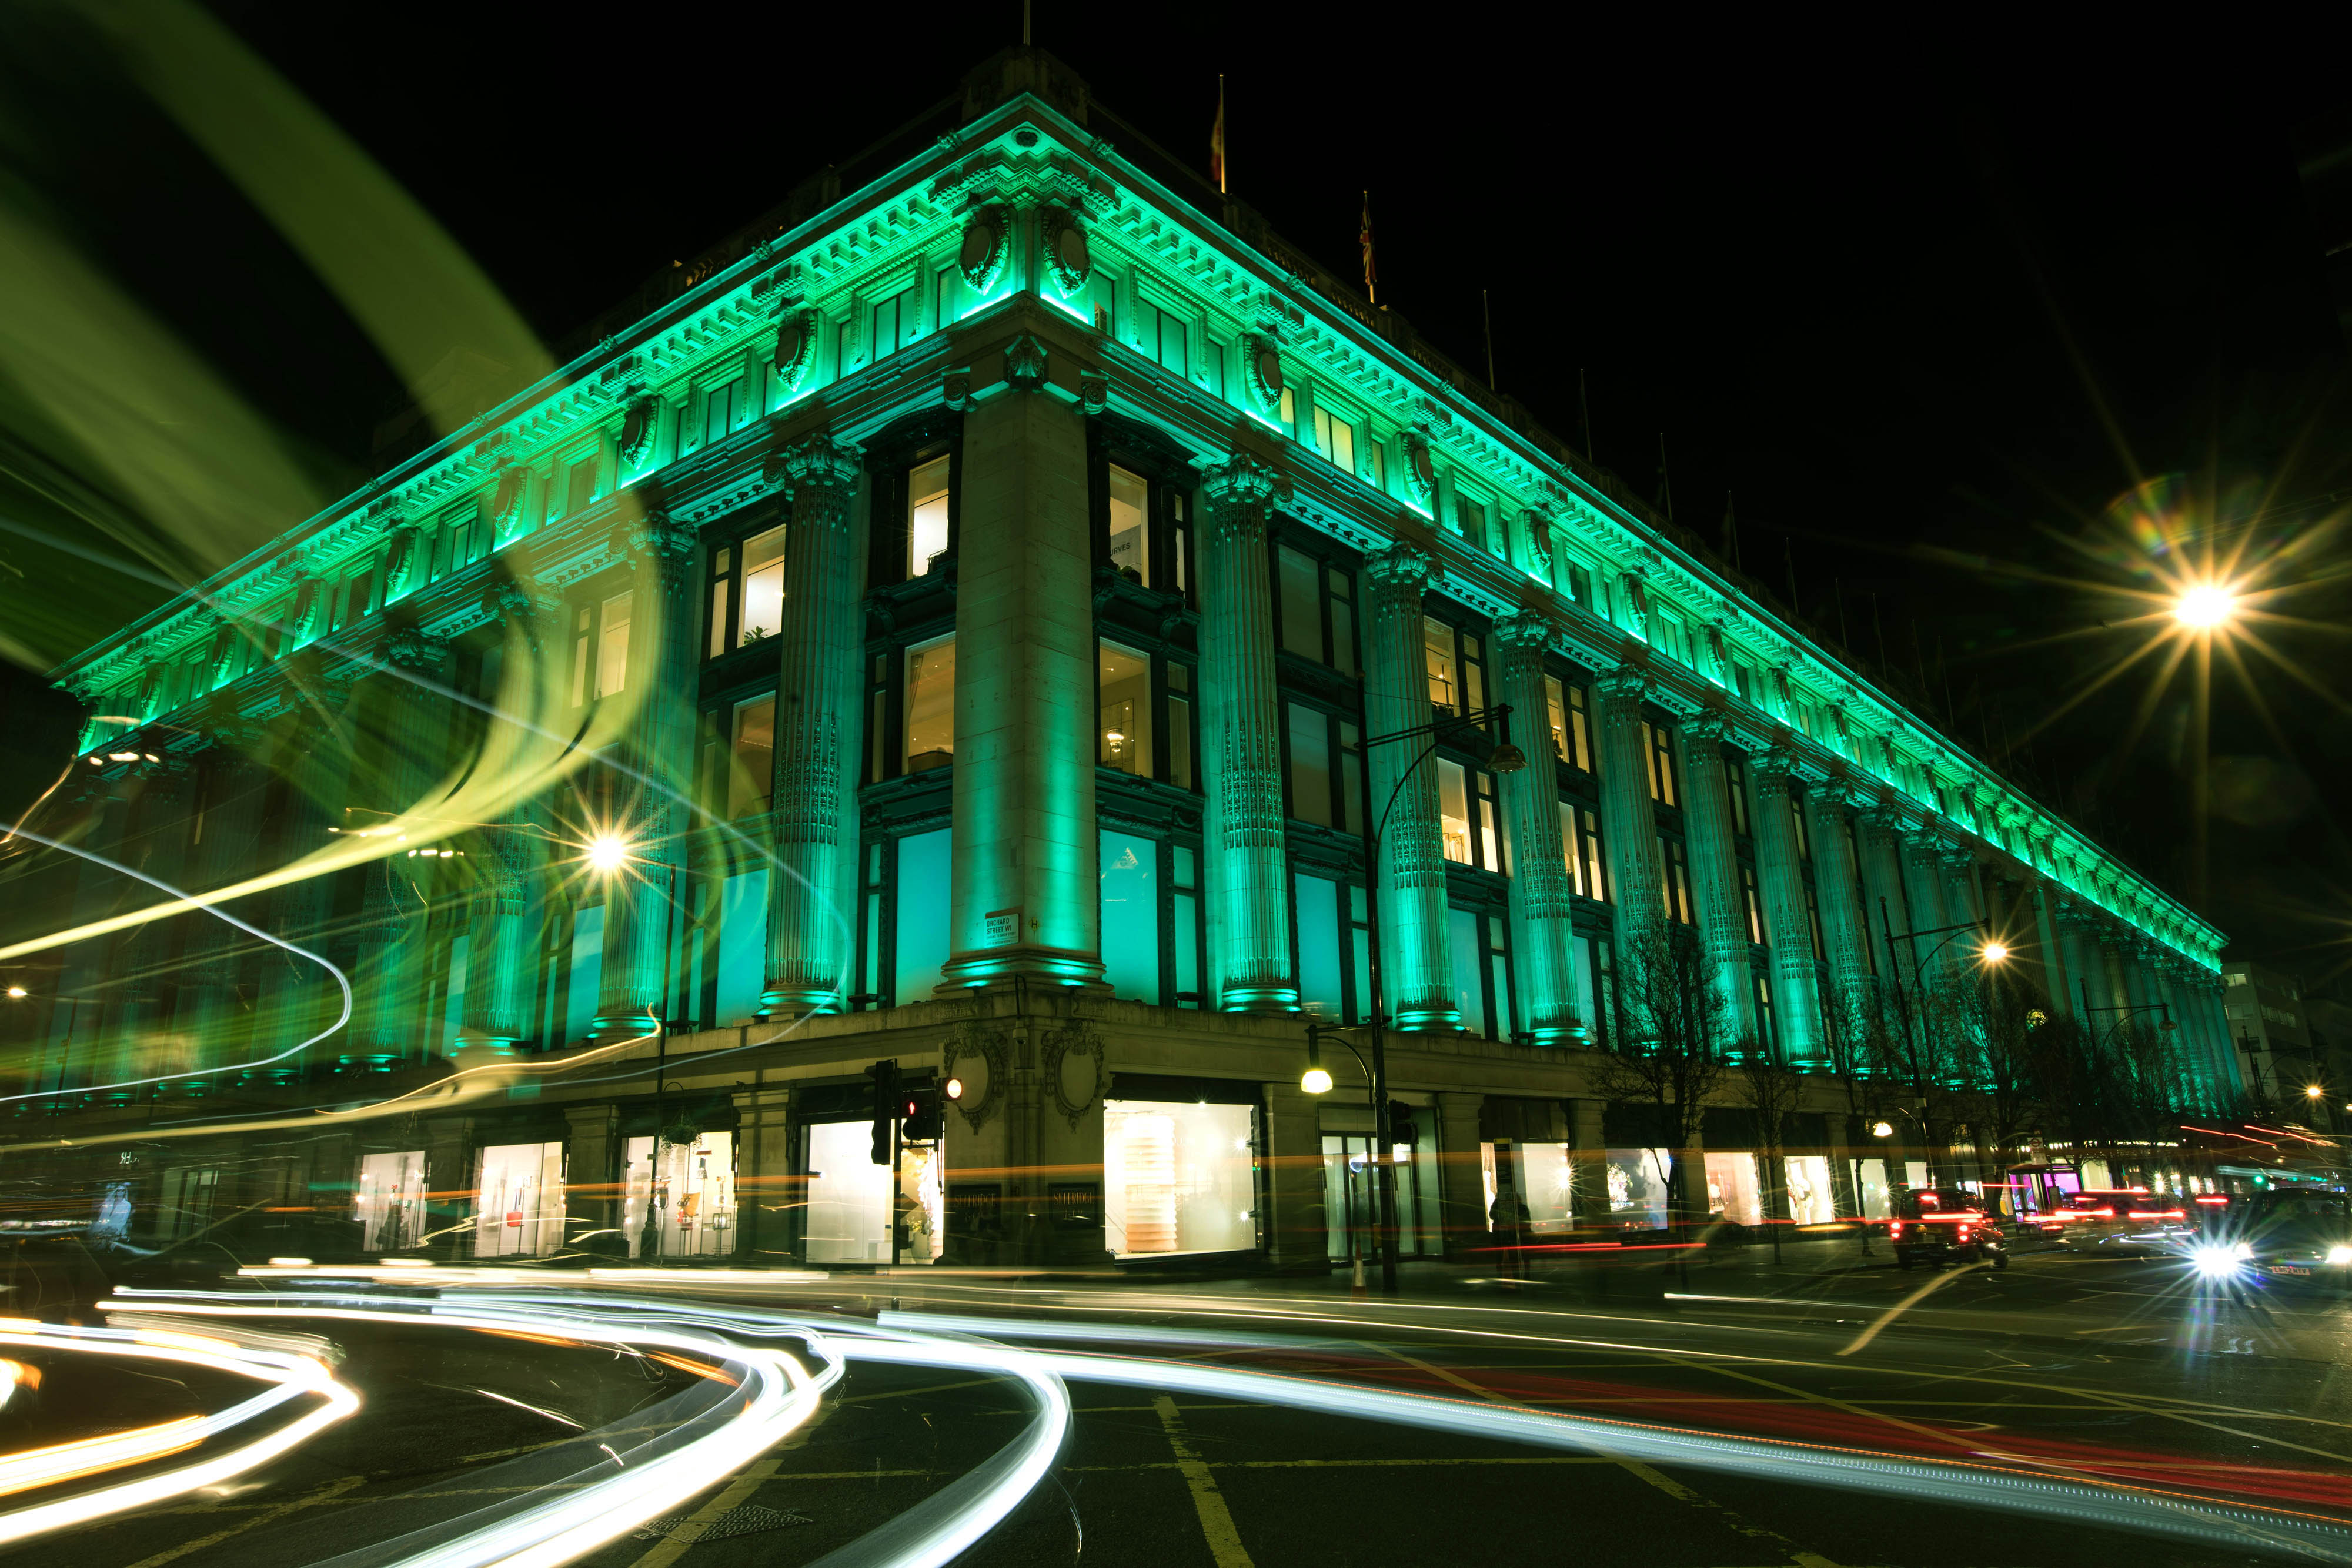 Selfridges in London joined Tourism Ireland's Global Greening initiative